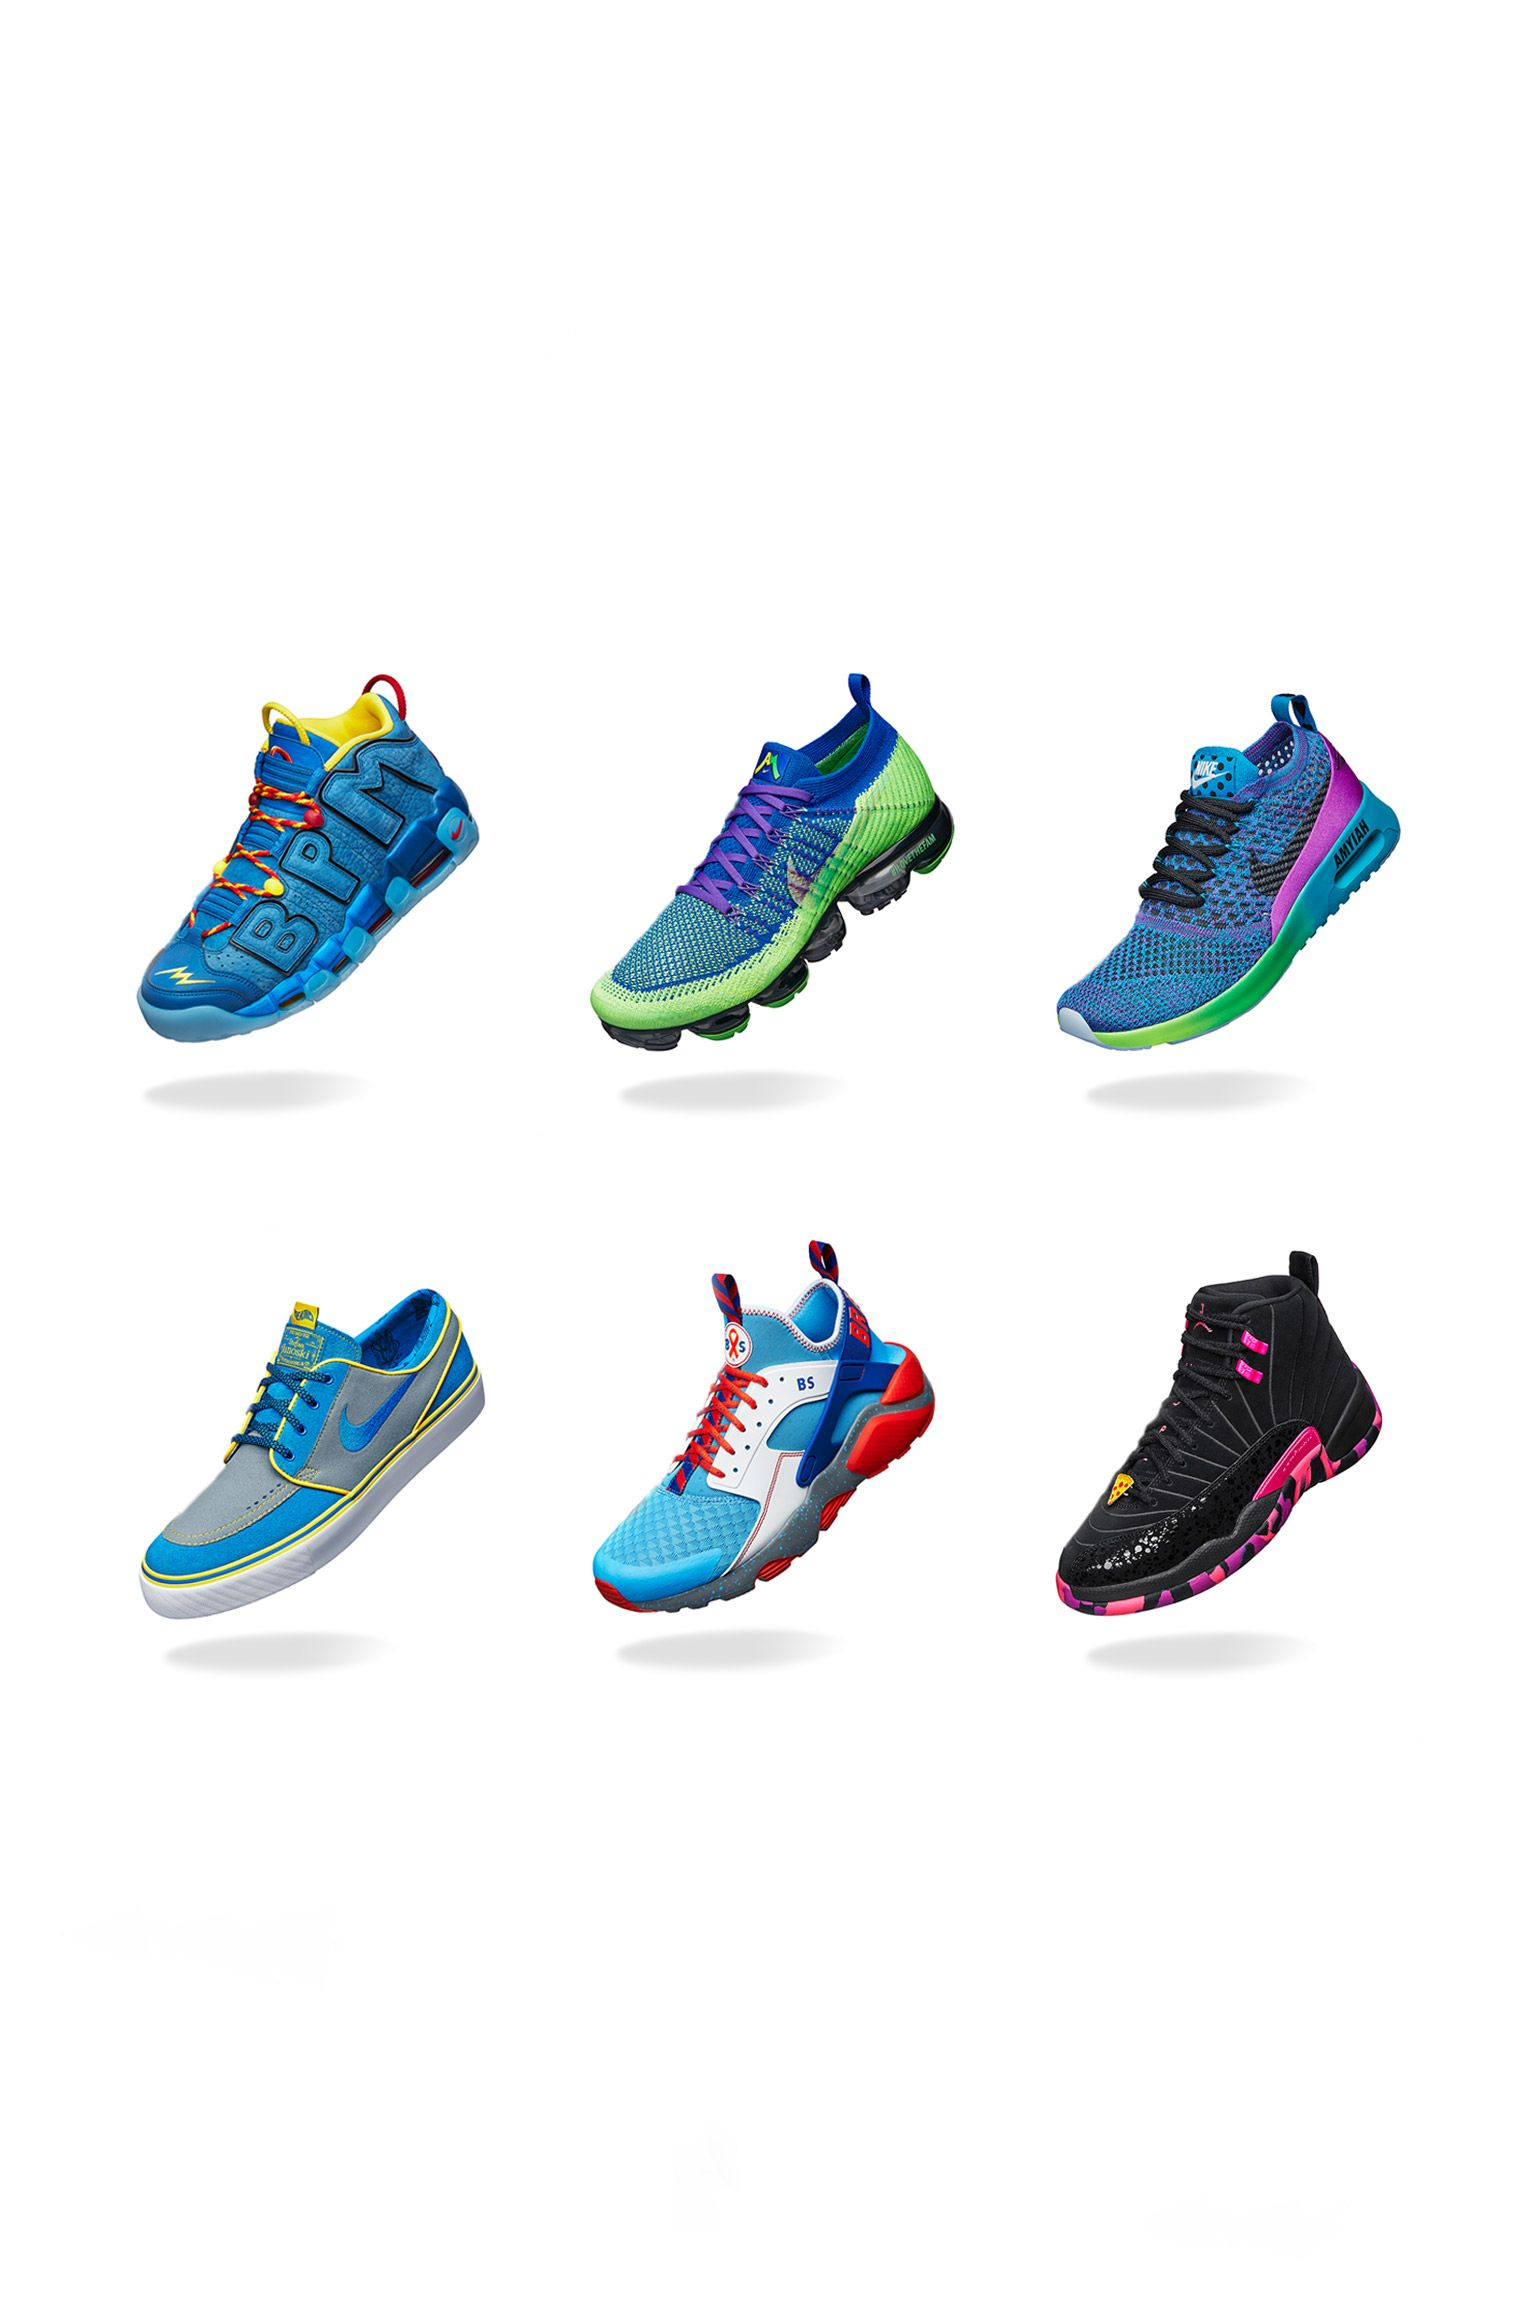 506f8d9ac3 Nike Doernbecher Freestyle Collection 2017 Release Date. Nike+ SNKRS